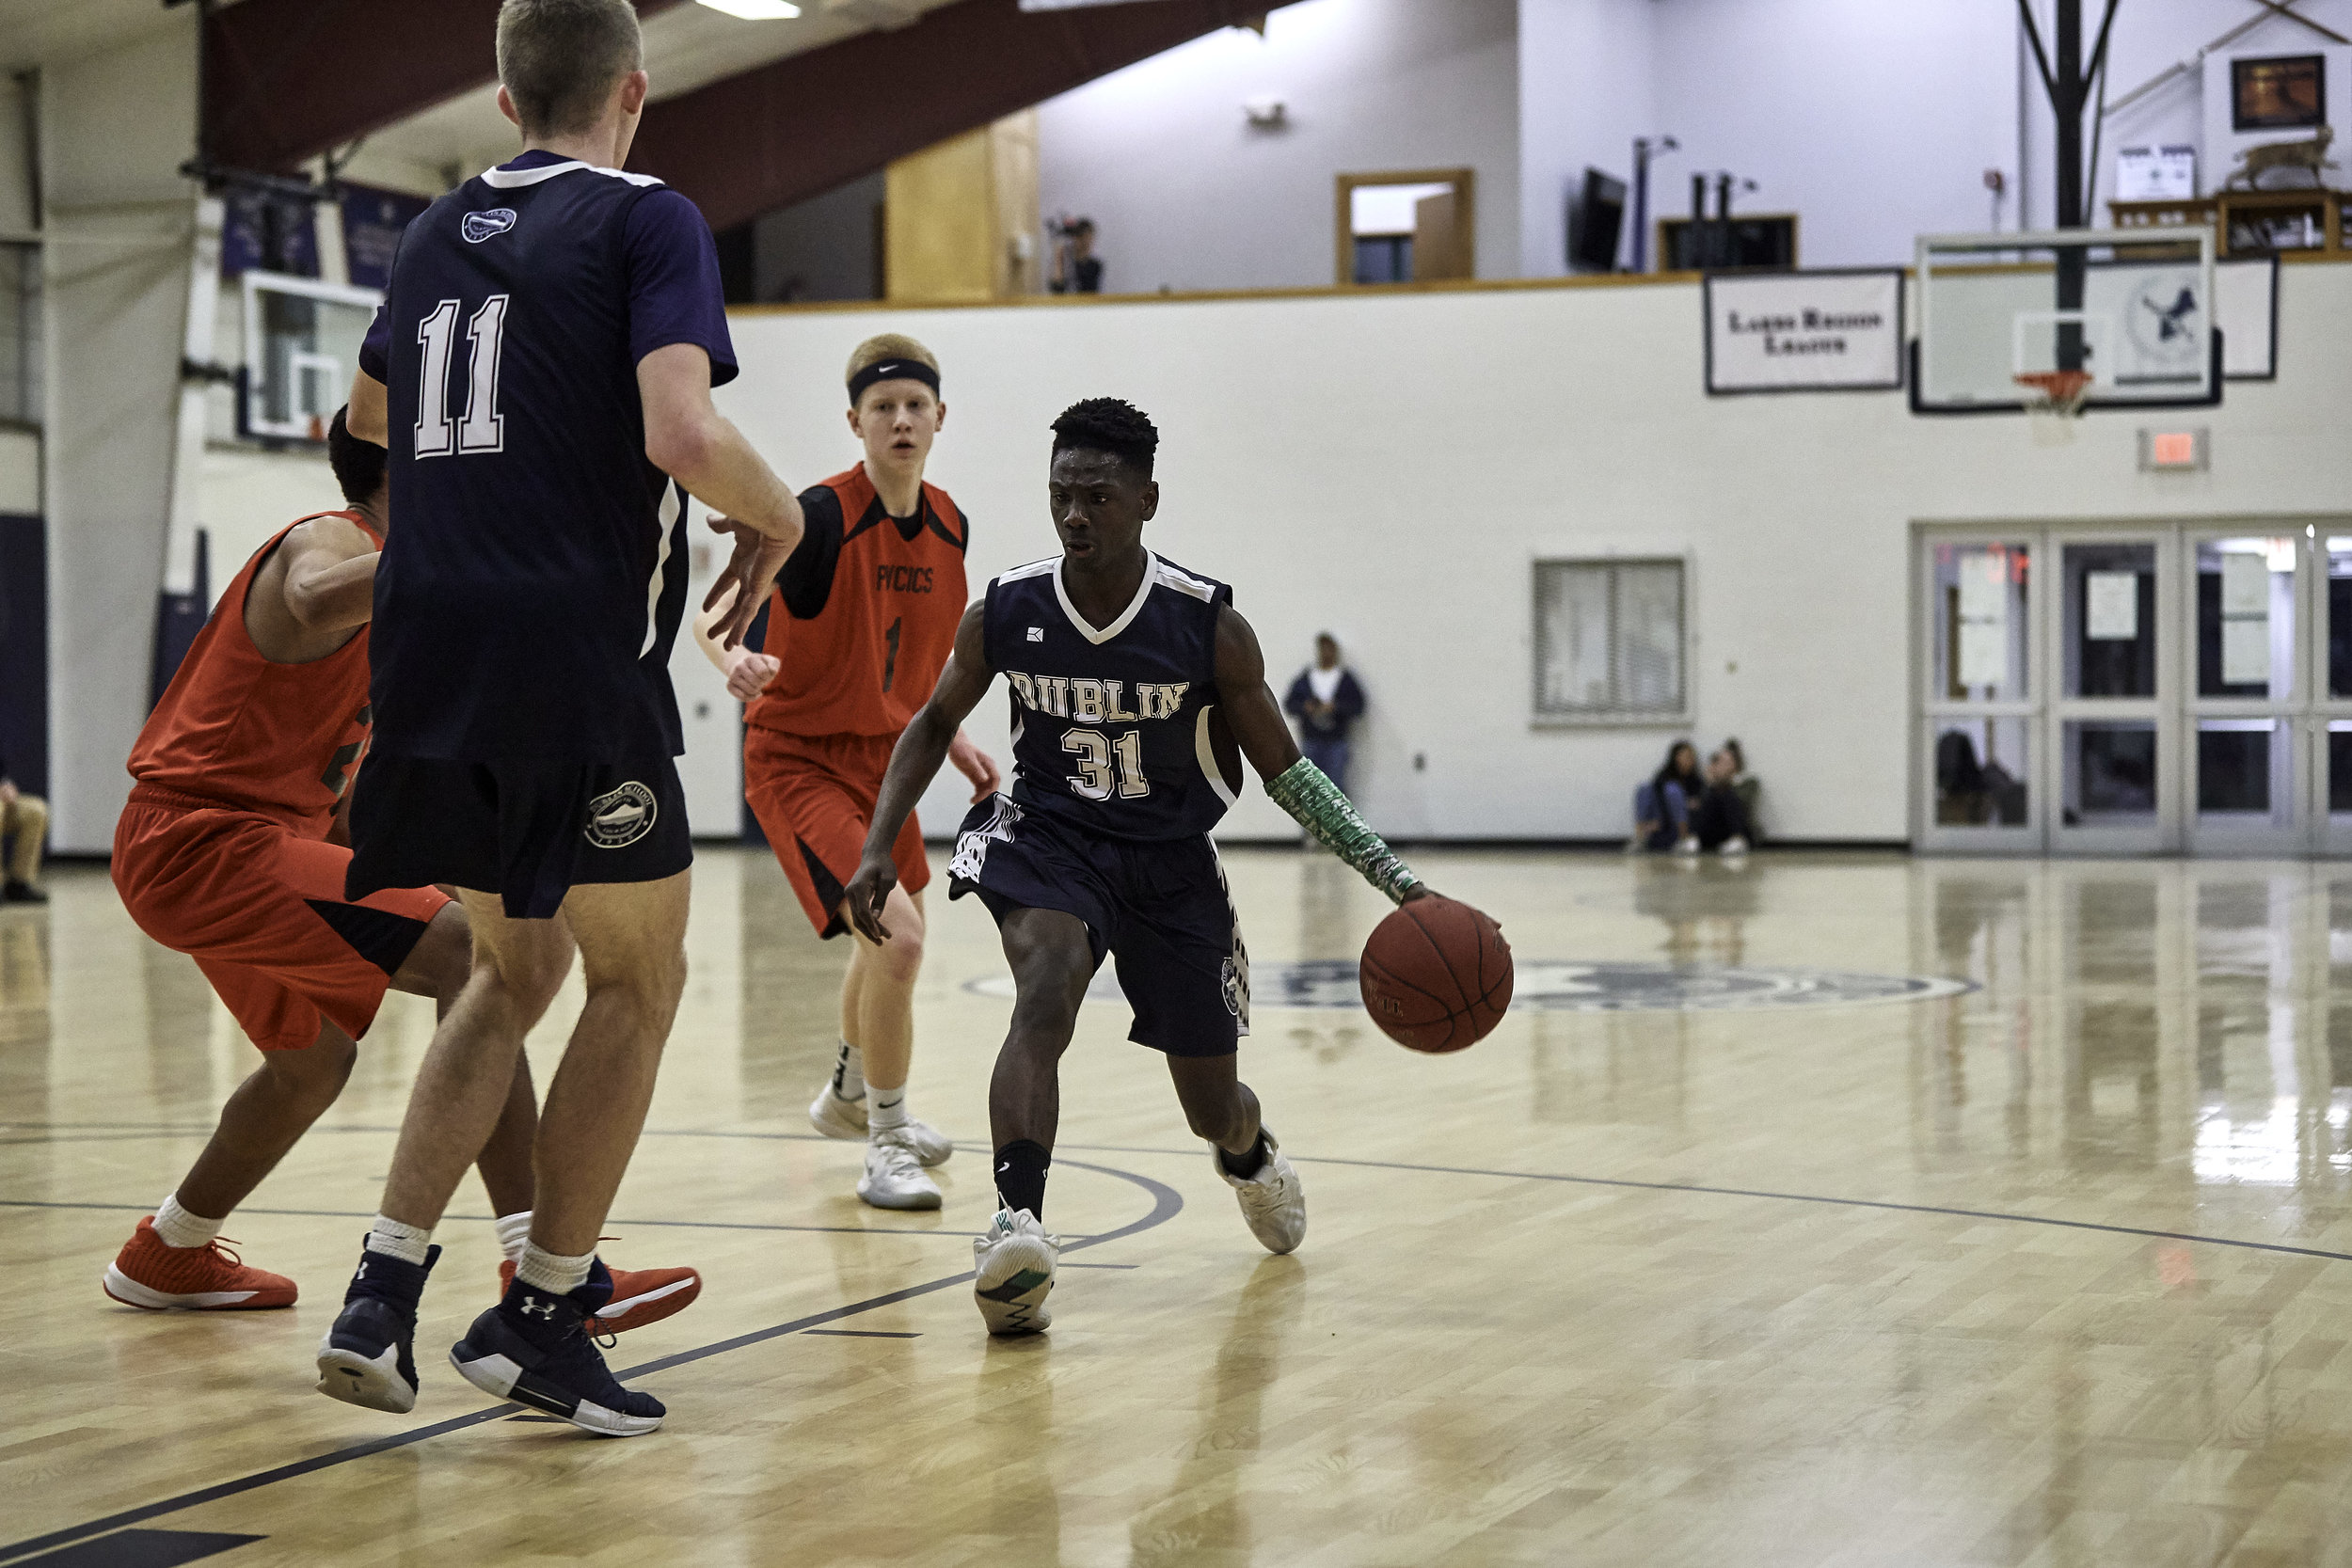 RVAL Championship Game - February 14, 2019 - 168612.jpg